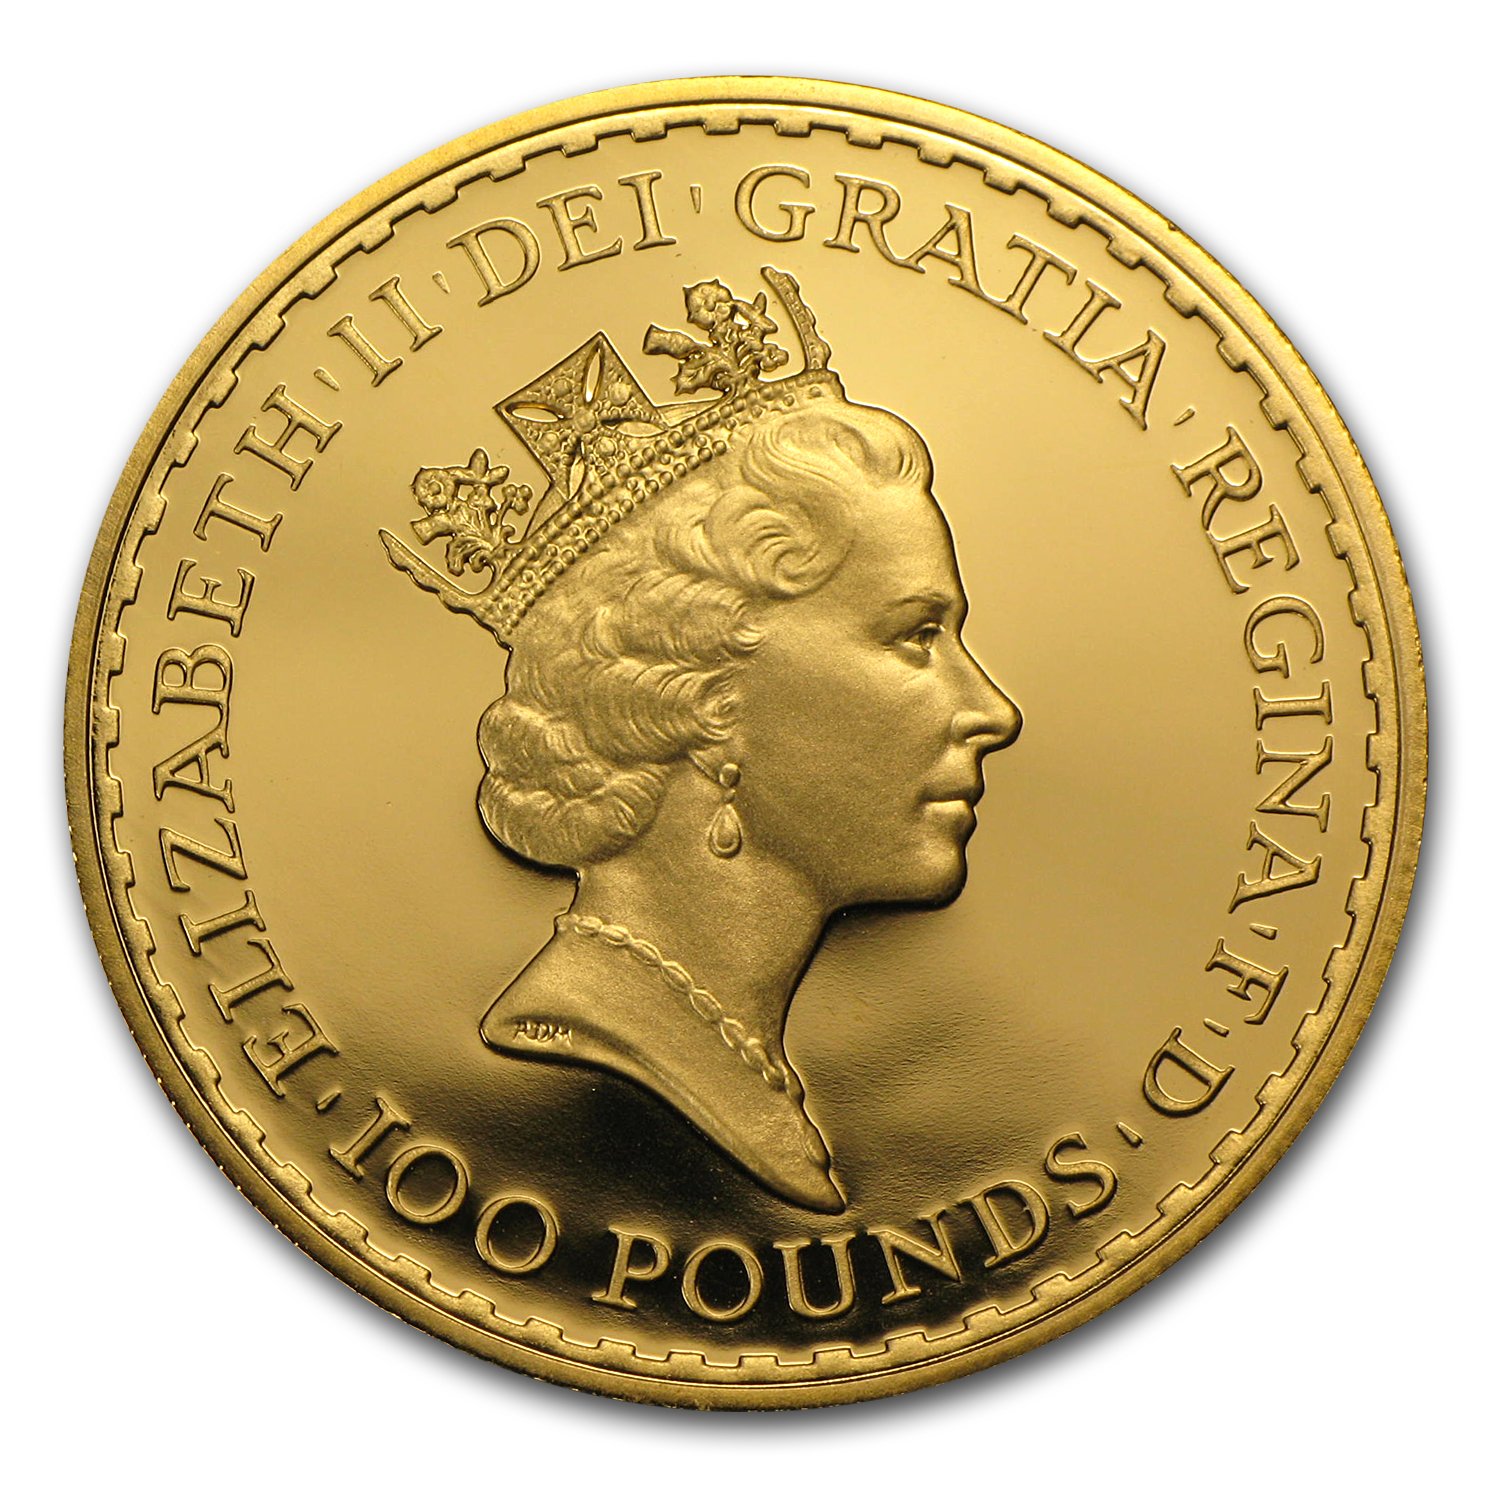 1995 1 oz Proof Gold Britannia